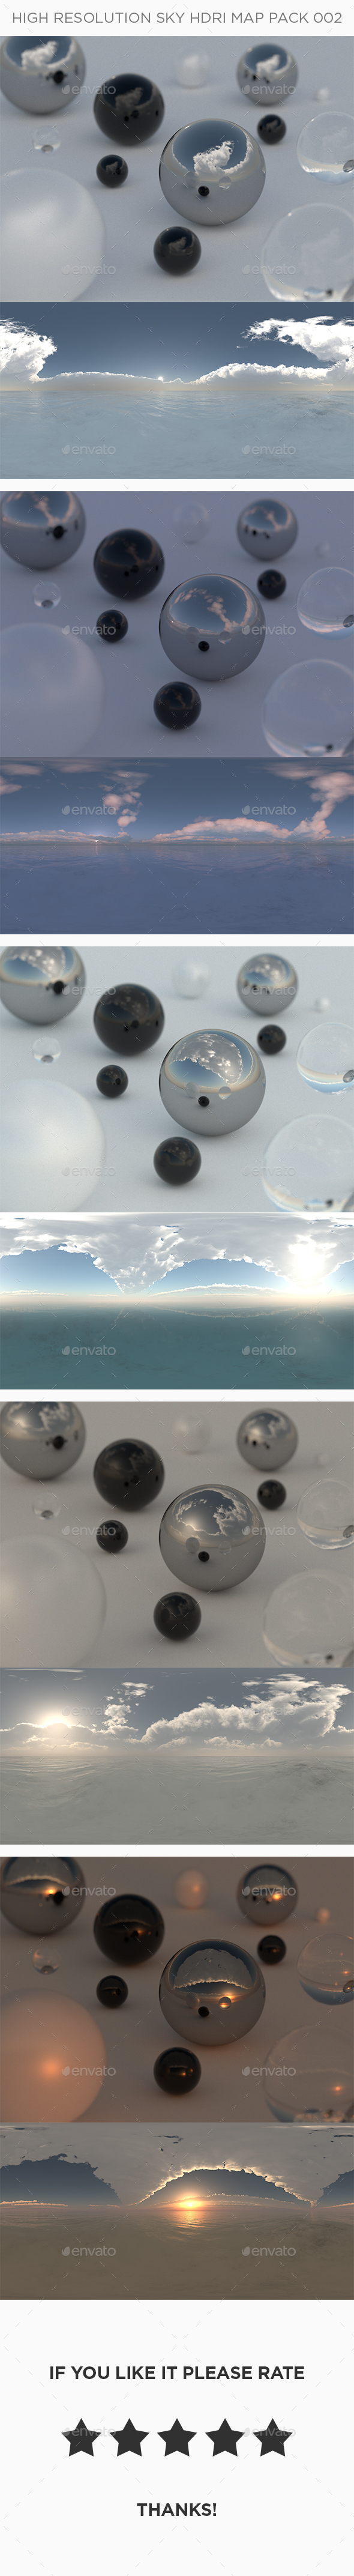 5 High Resolution Sky HDRi Maps Pack 002 - 3DOcean Item for Sale